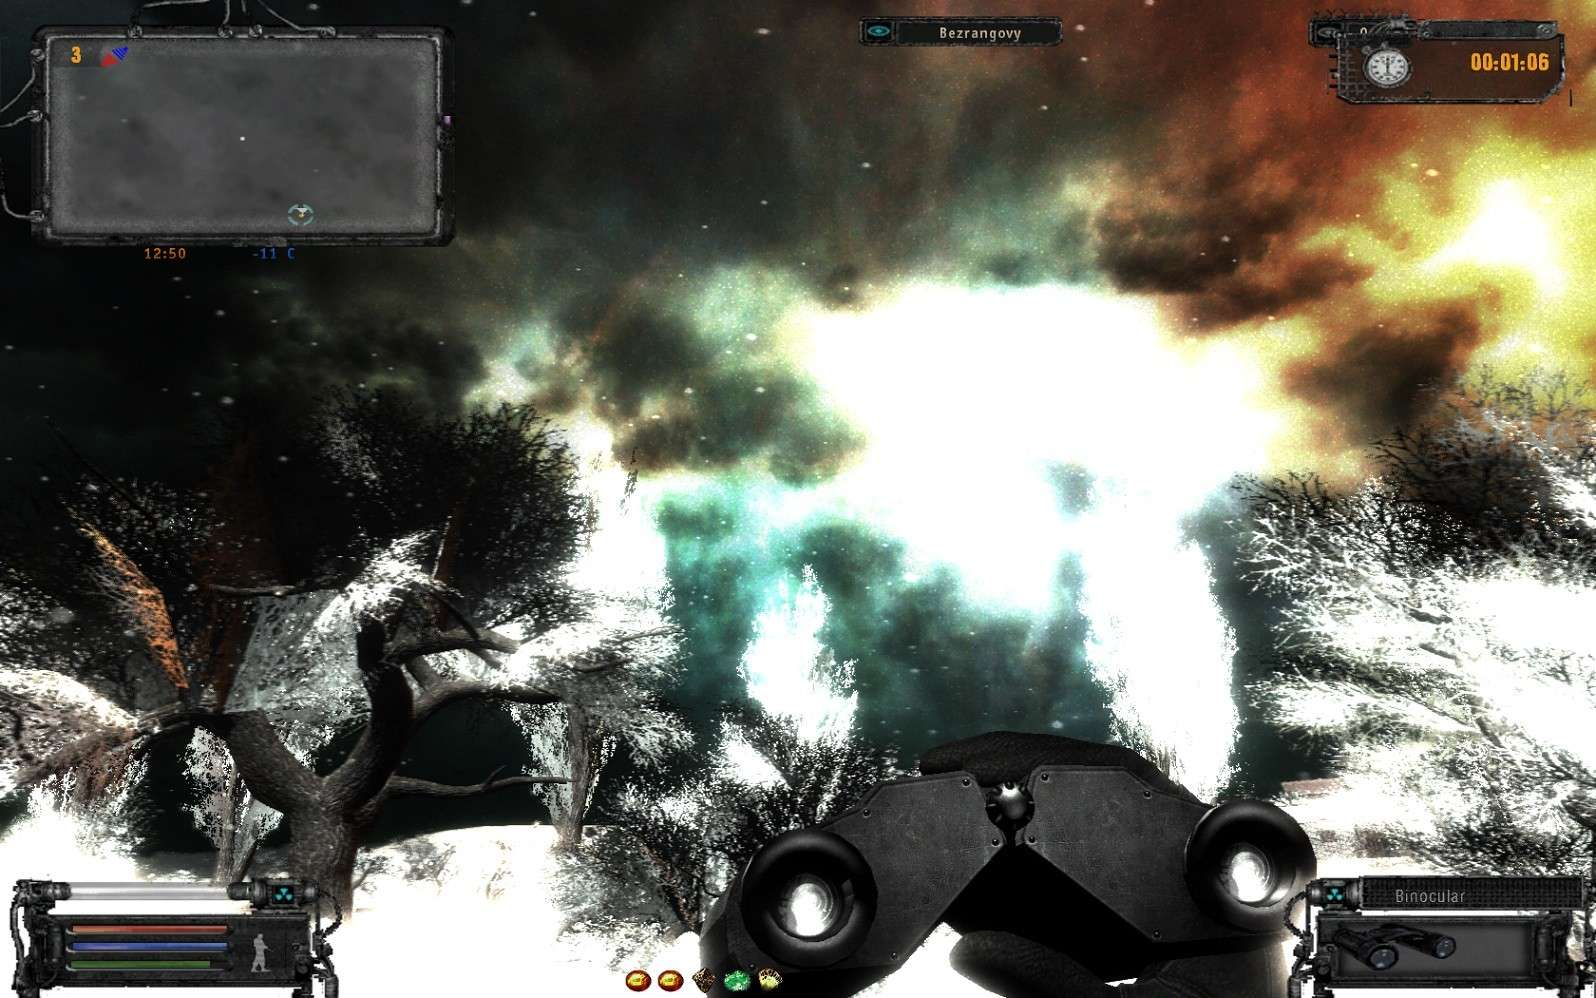 Nature Winter 2.3 Black Edition (eng 1.01 Deluxe) Images Gallery! Serie:1# D11